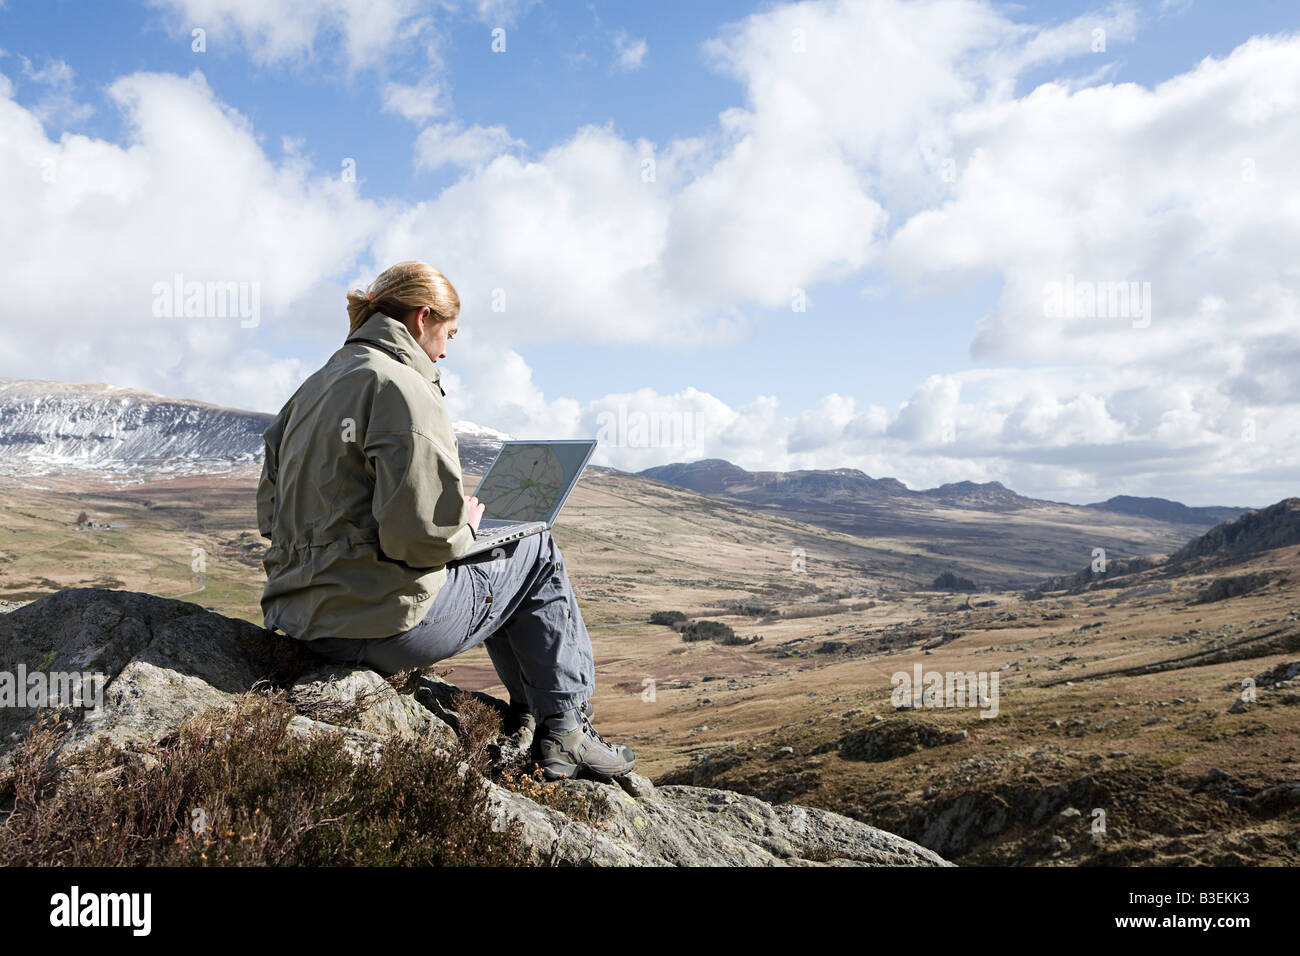 A woman sat on a rock using a laptop - Stock Image